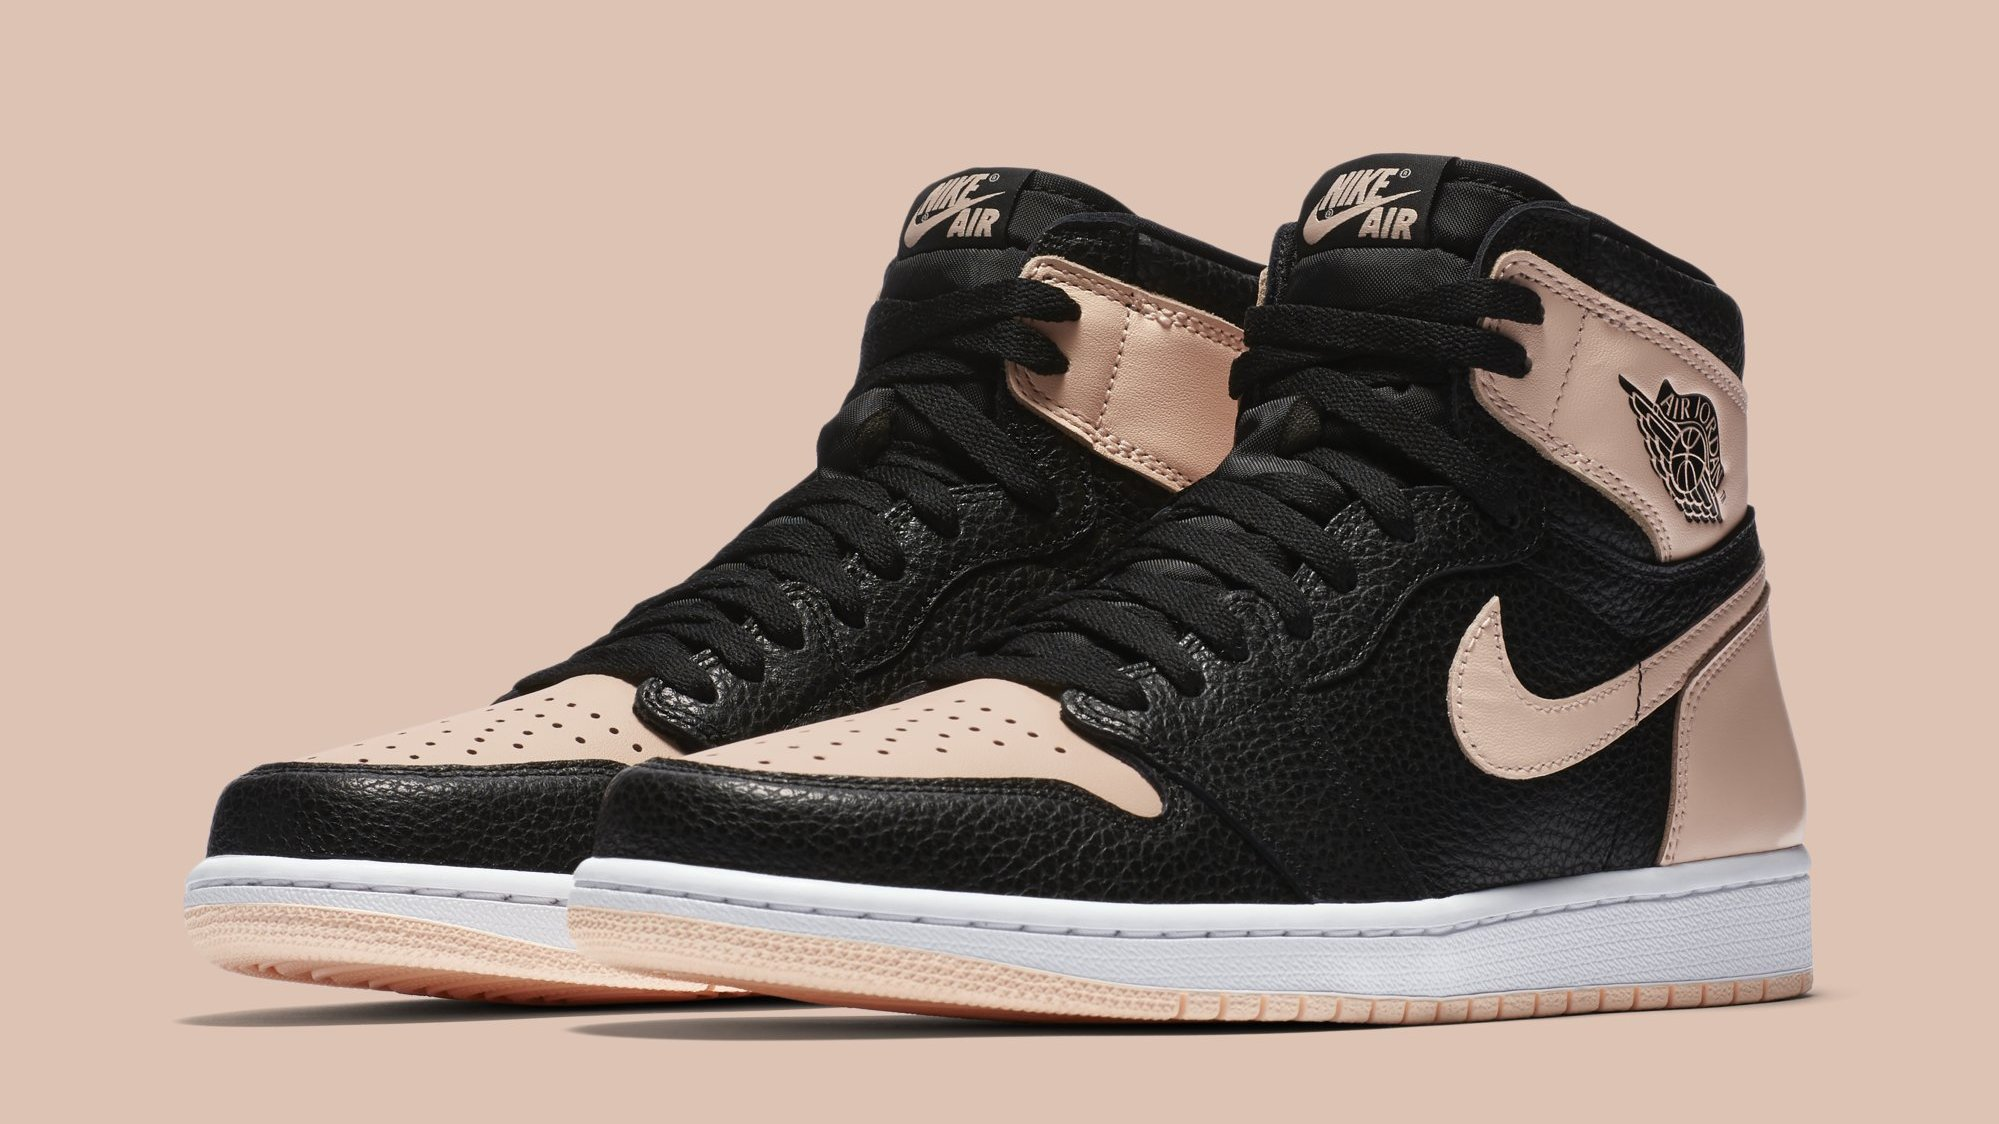 free shipping d27a6 ff458 The  Crimson Tint  Air Jordan 1 Gets a New Release Date